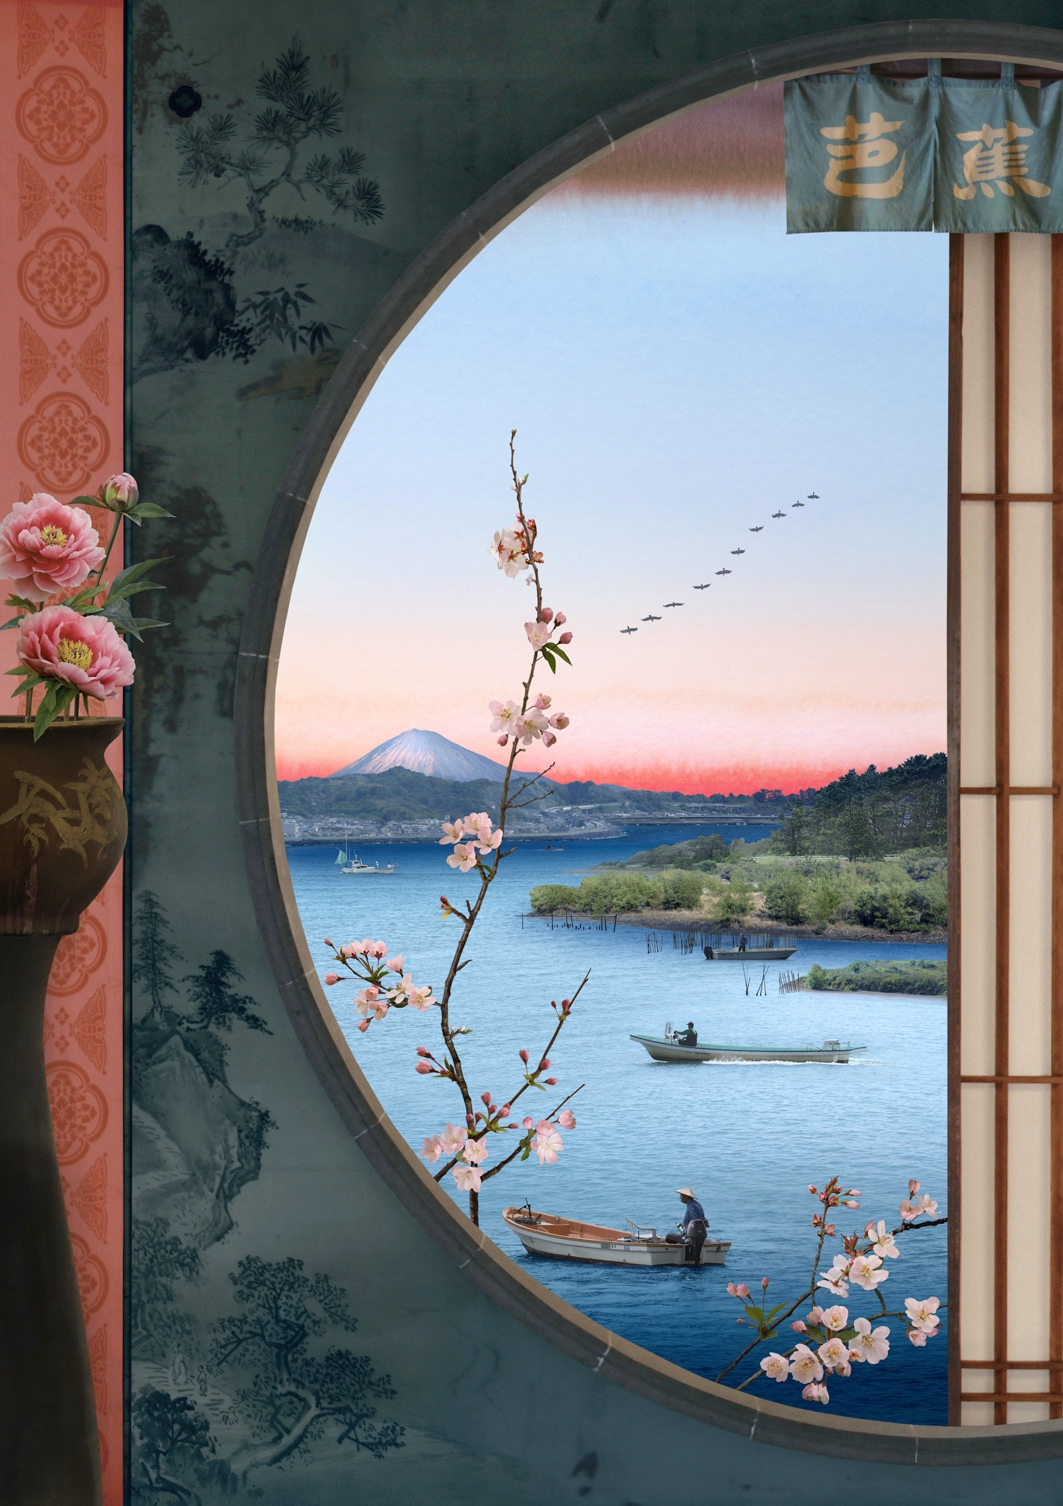 Emily Allchurch, Picture Window (after Hiroshige), 2020. Courtesy of GBS Fine Art.